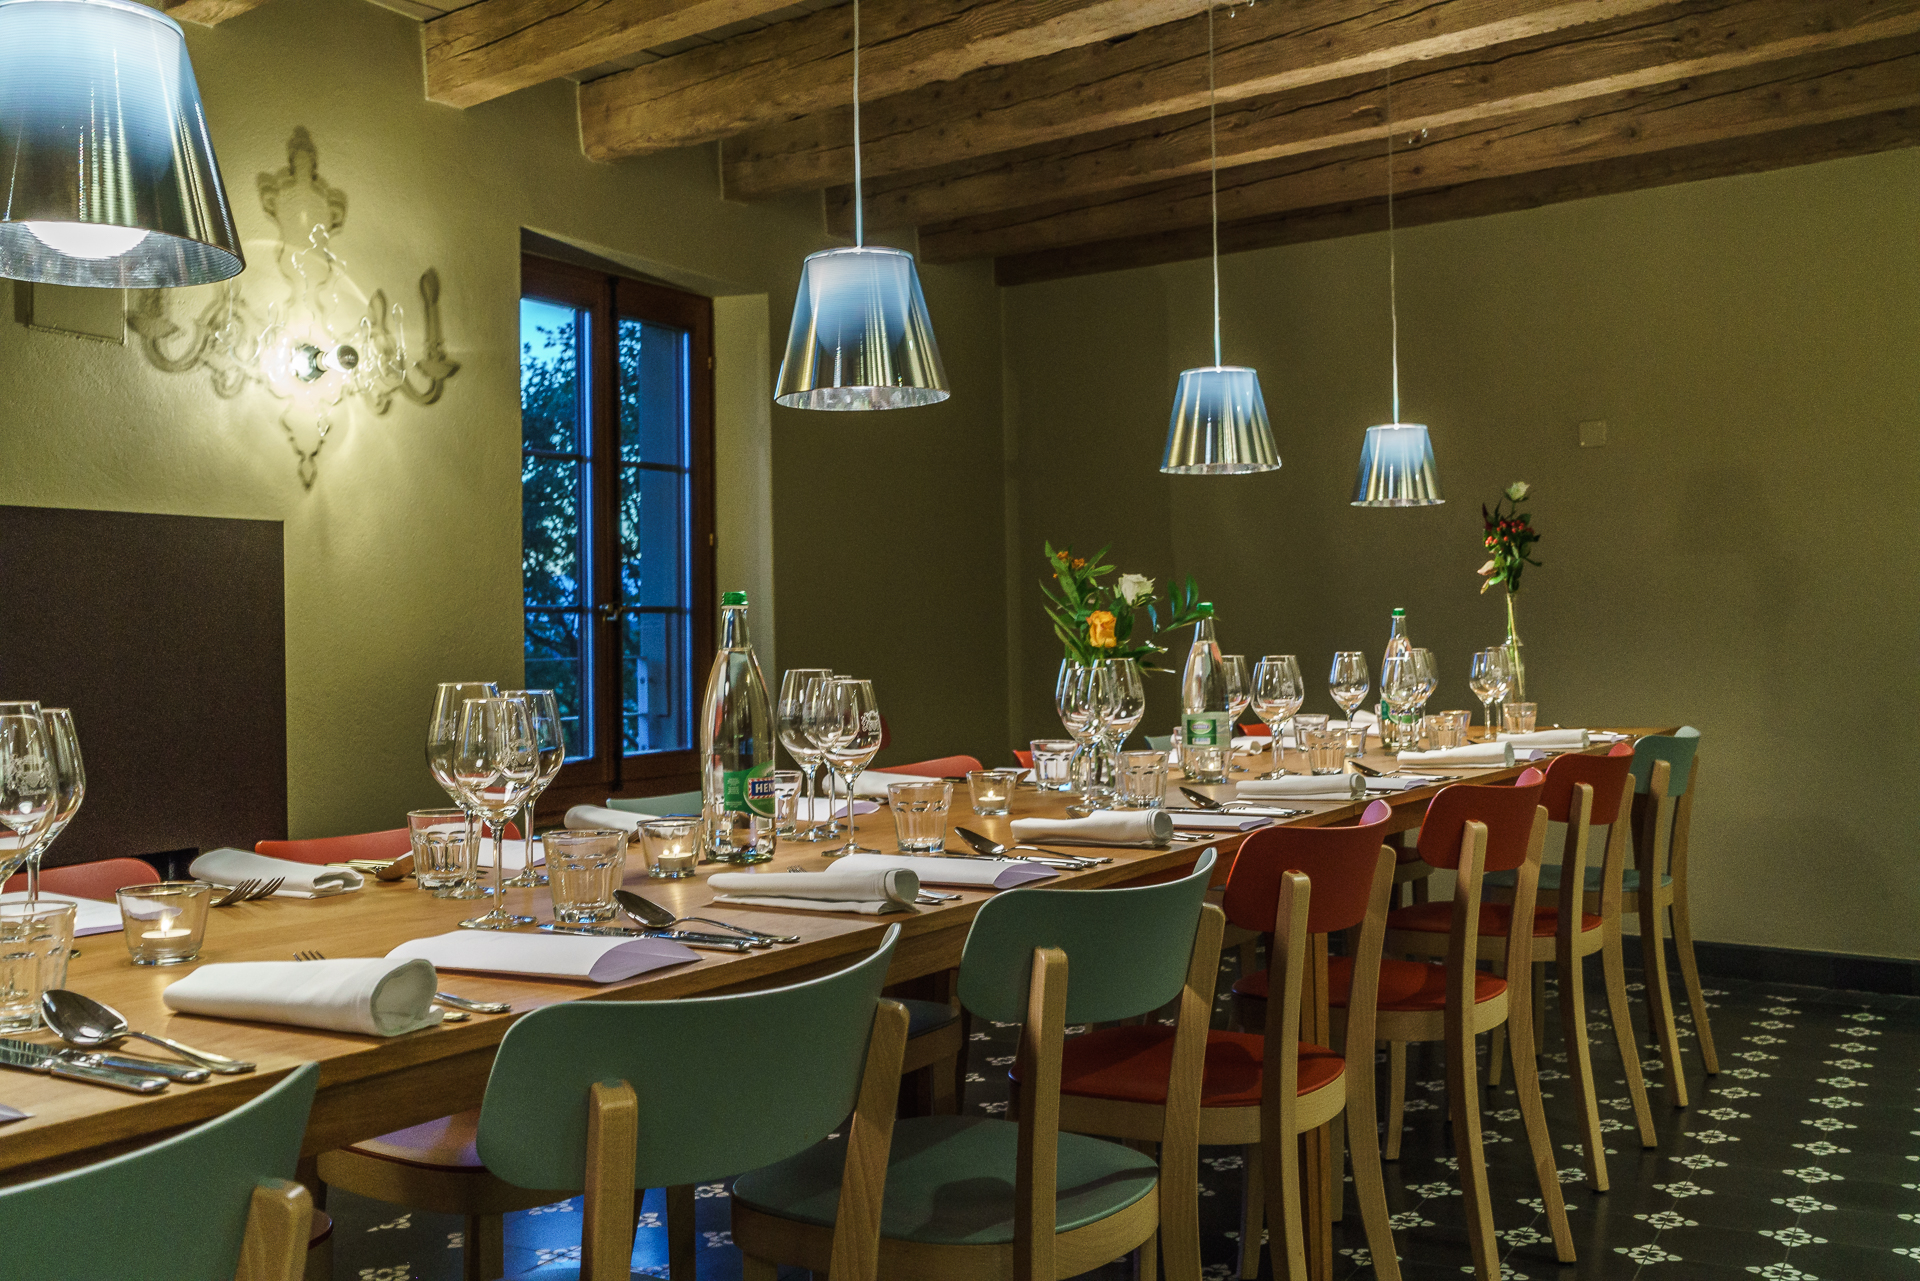 Chateau-Rochefort-Lausanne-a-table-2